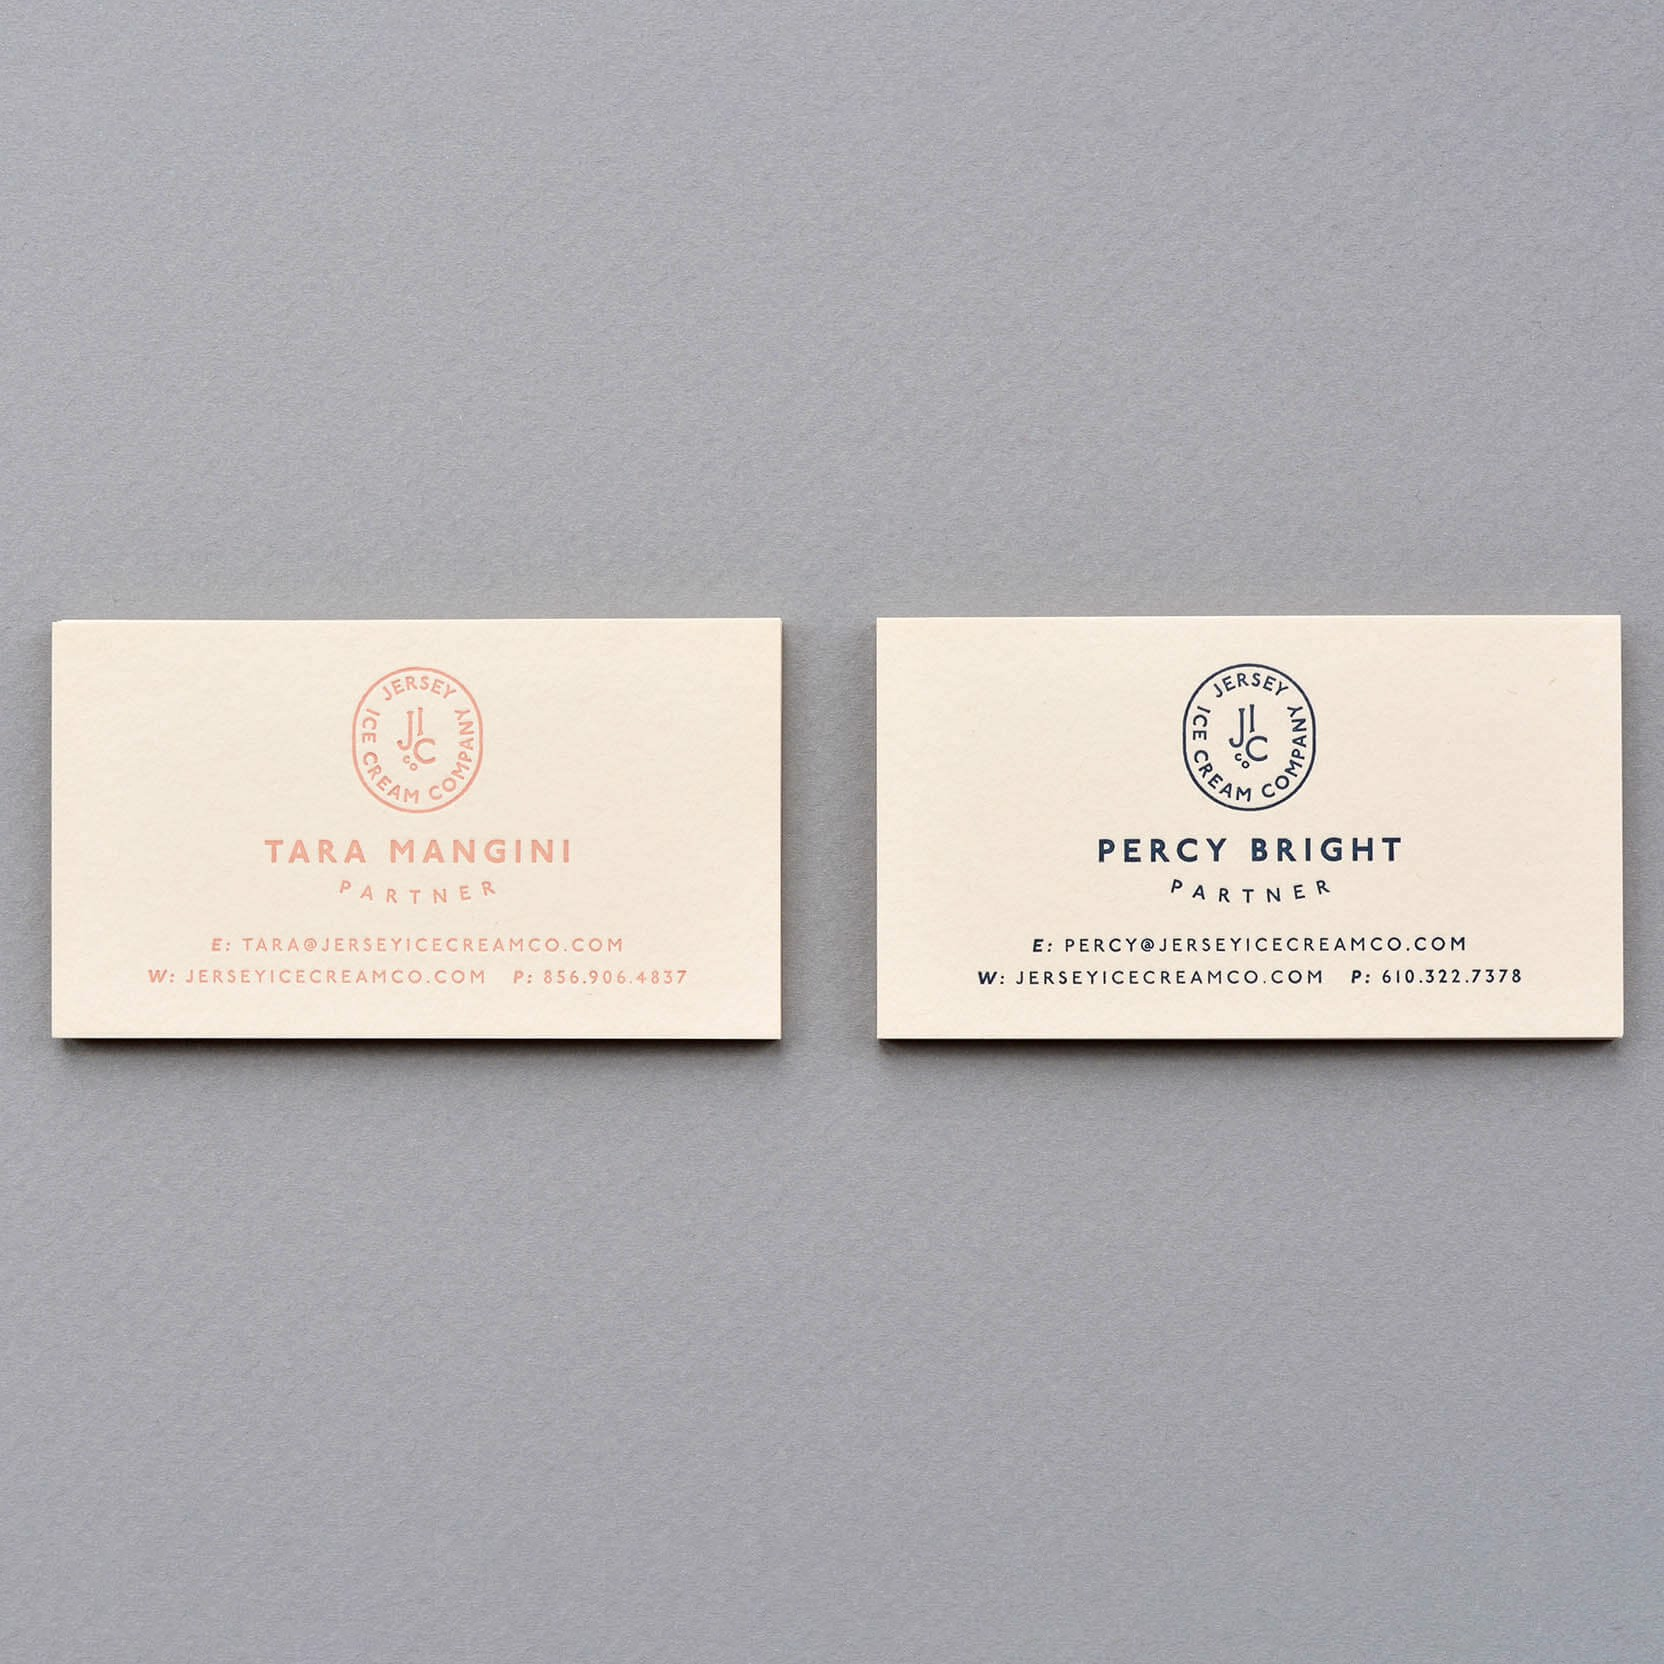 In Name Card giấy Cream sần